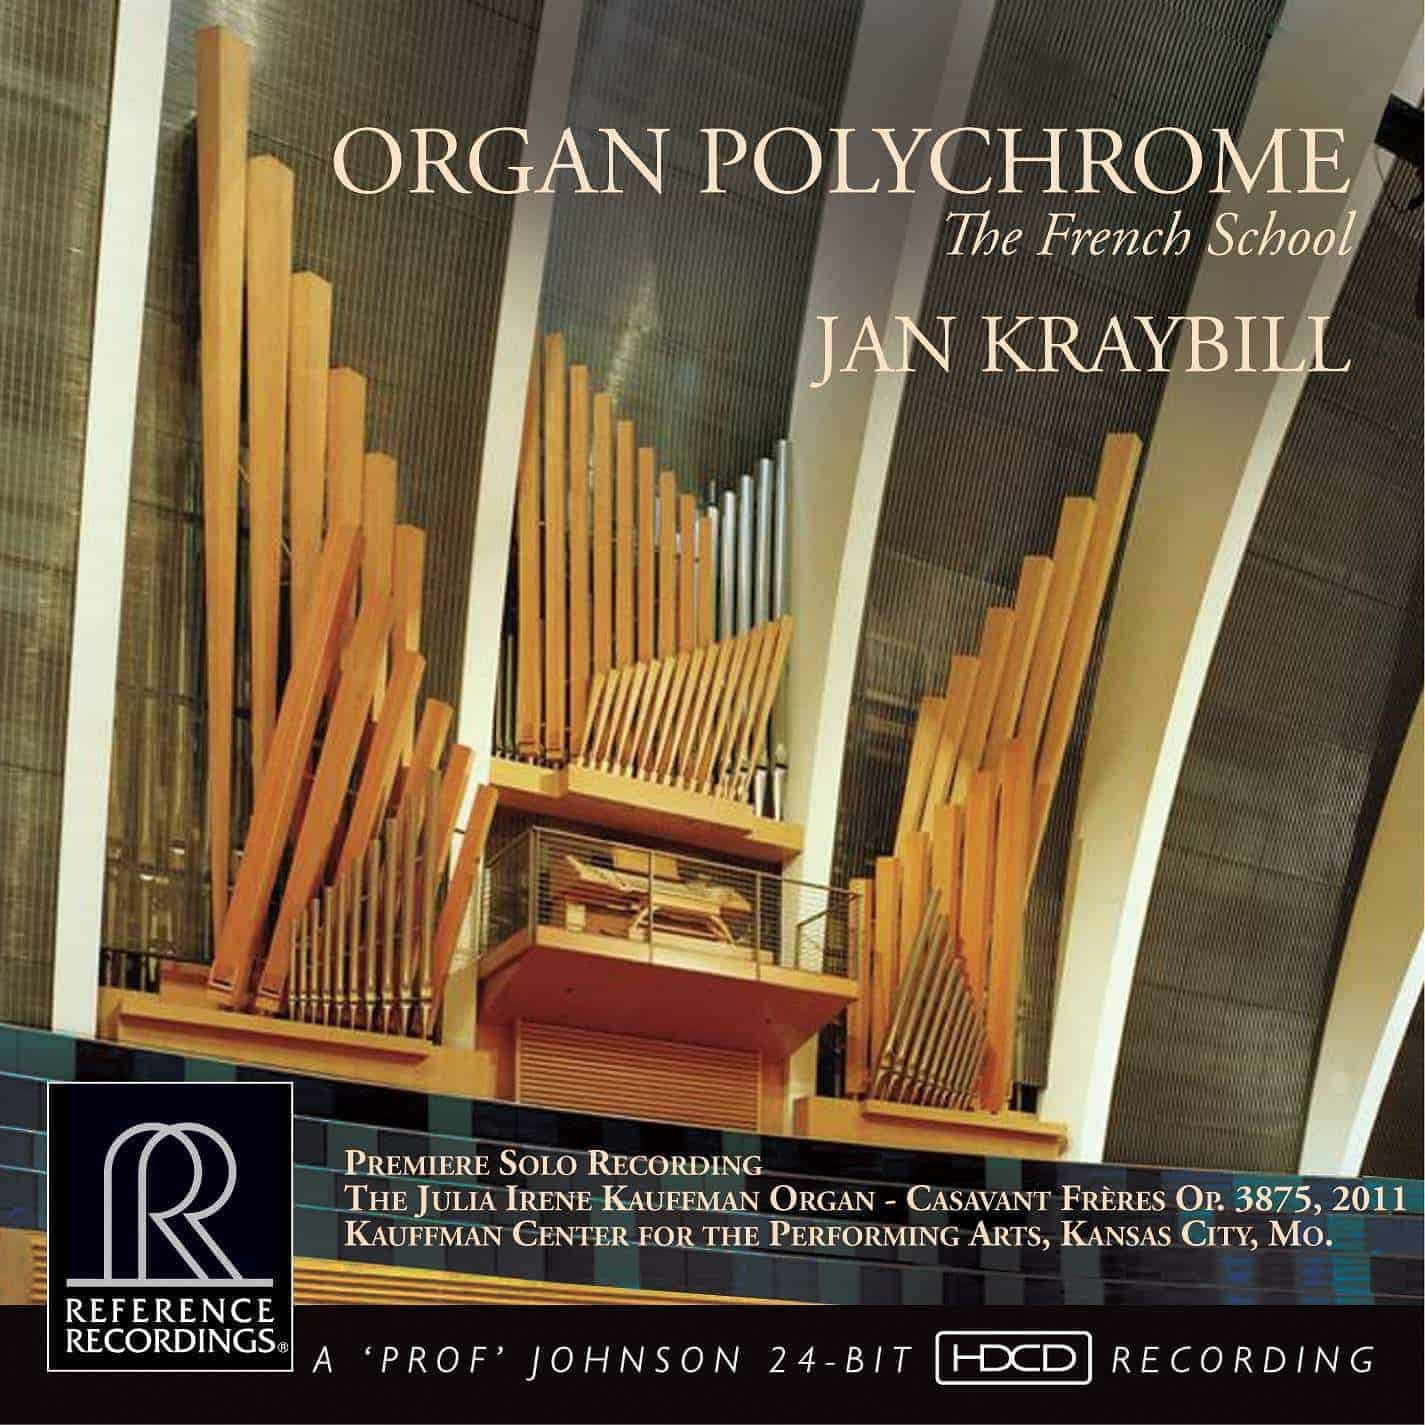 Organ Polychrome | Jan Kraybill